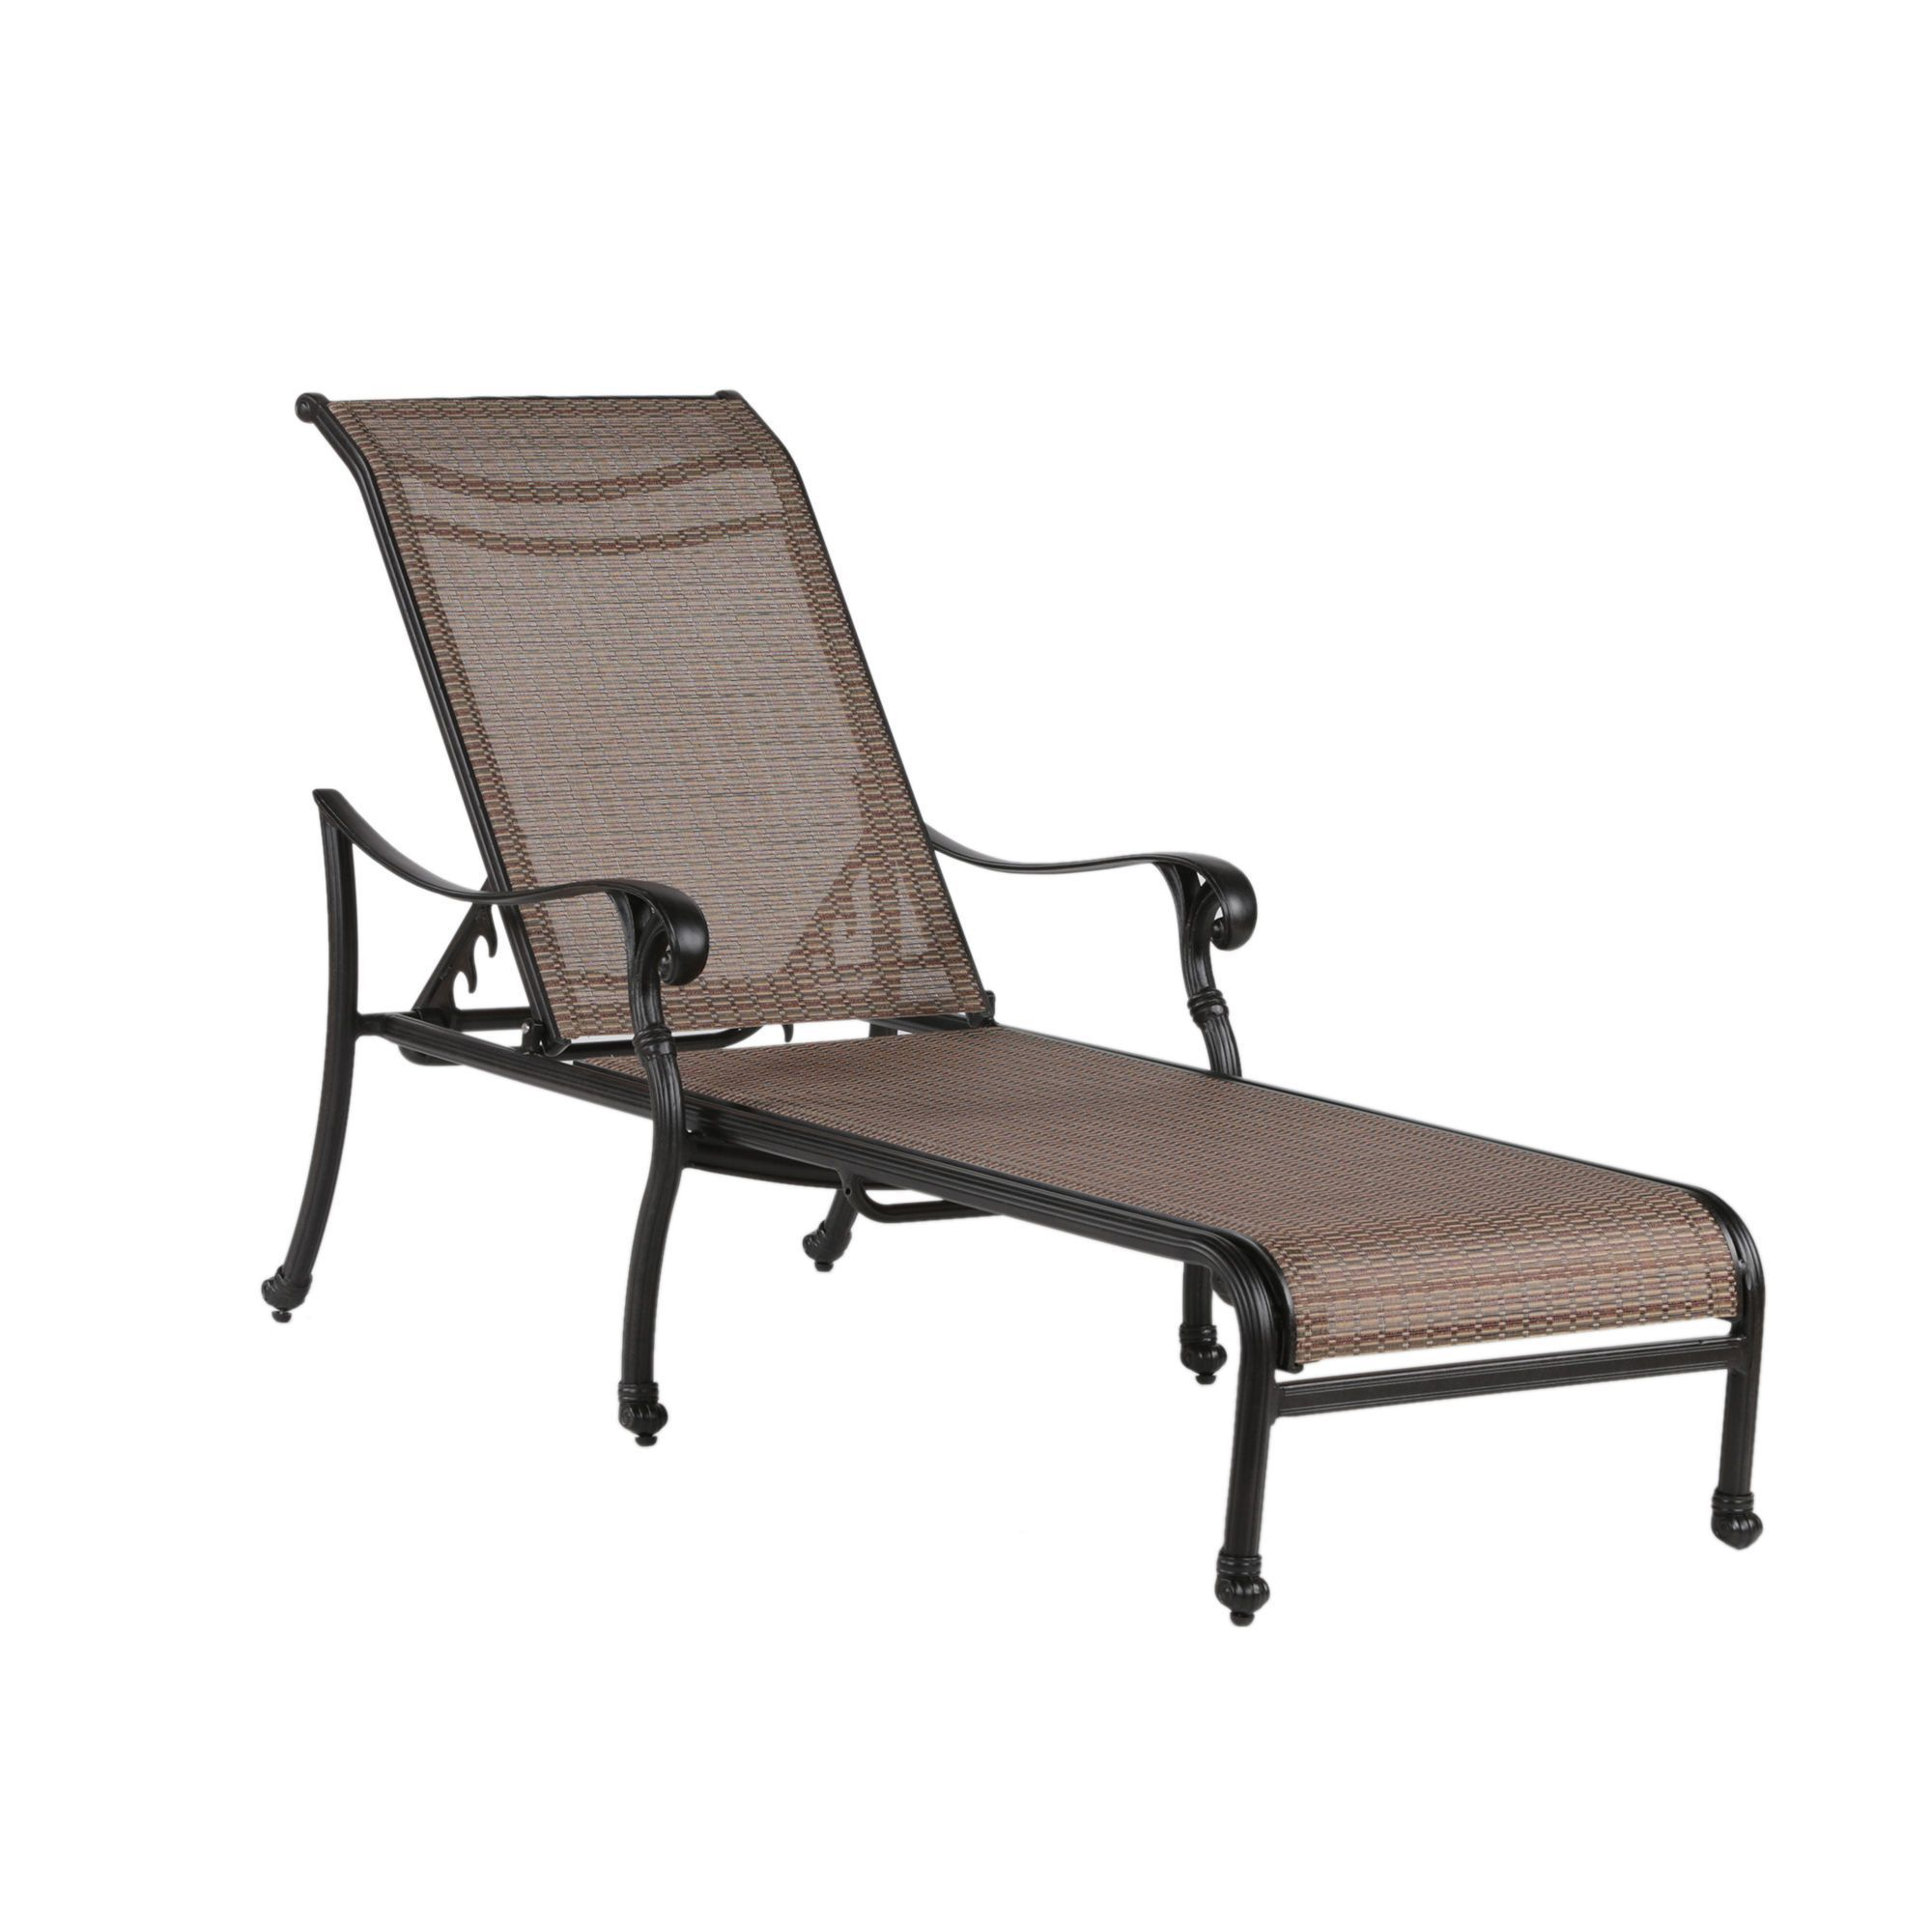 Swell Yorkshire Cast Aluminum Silver Reclining Sling Chaise Evergreenethics Interior Chair Design Evergreenethicsorg